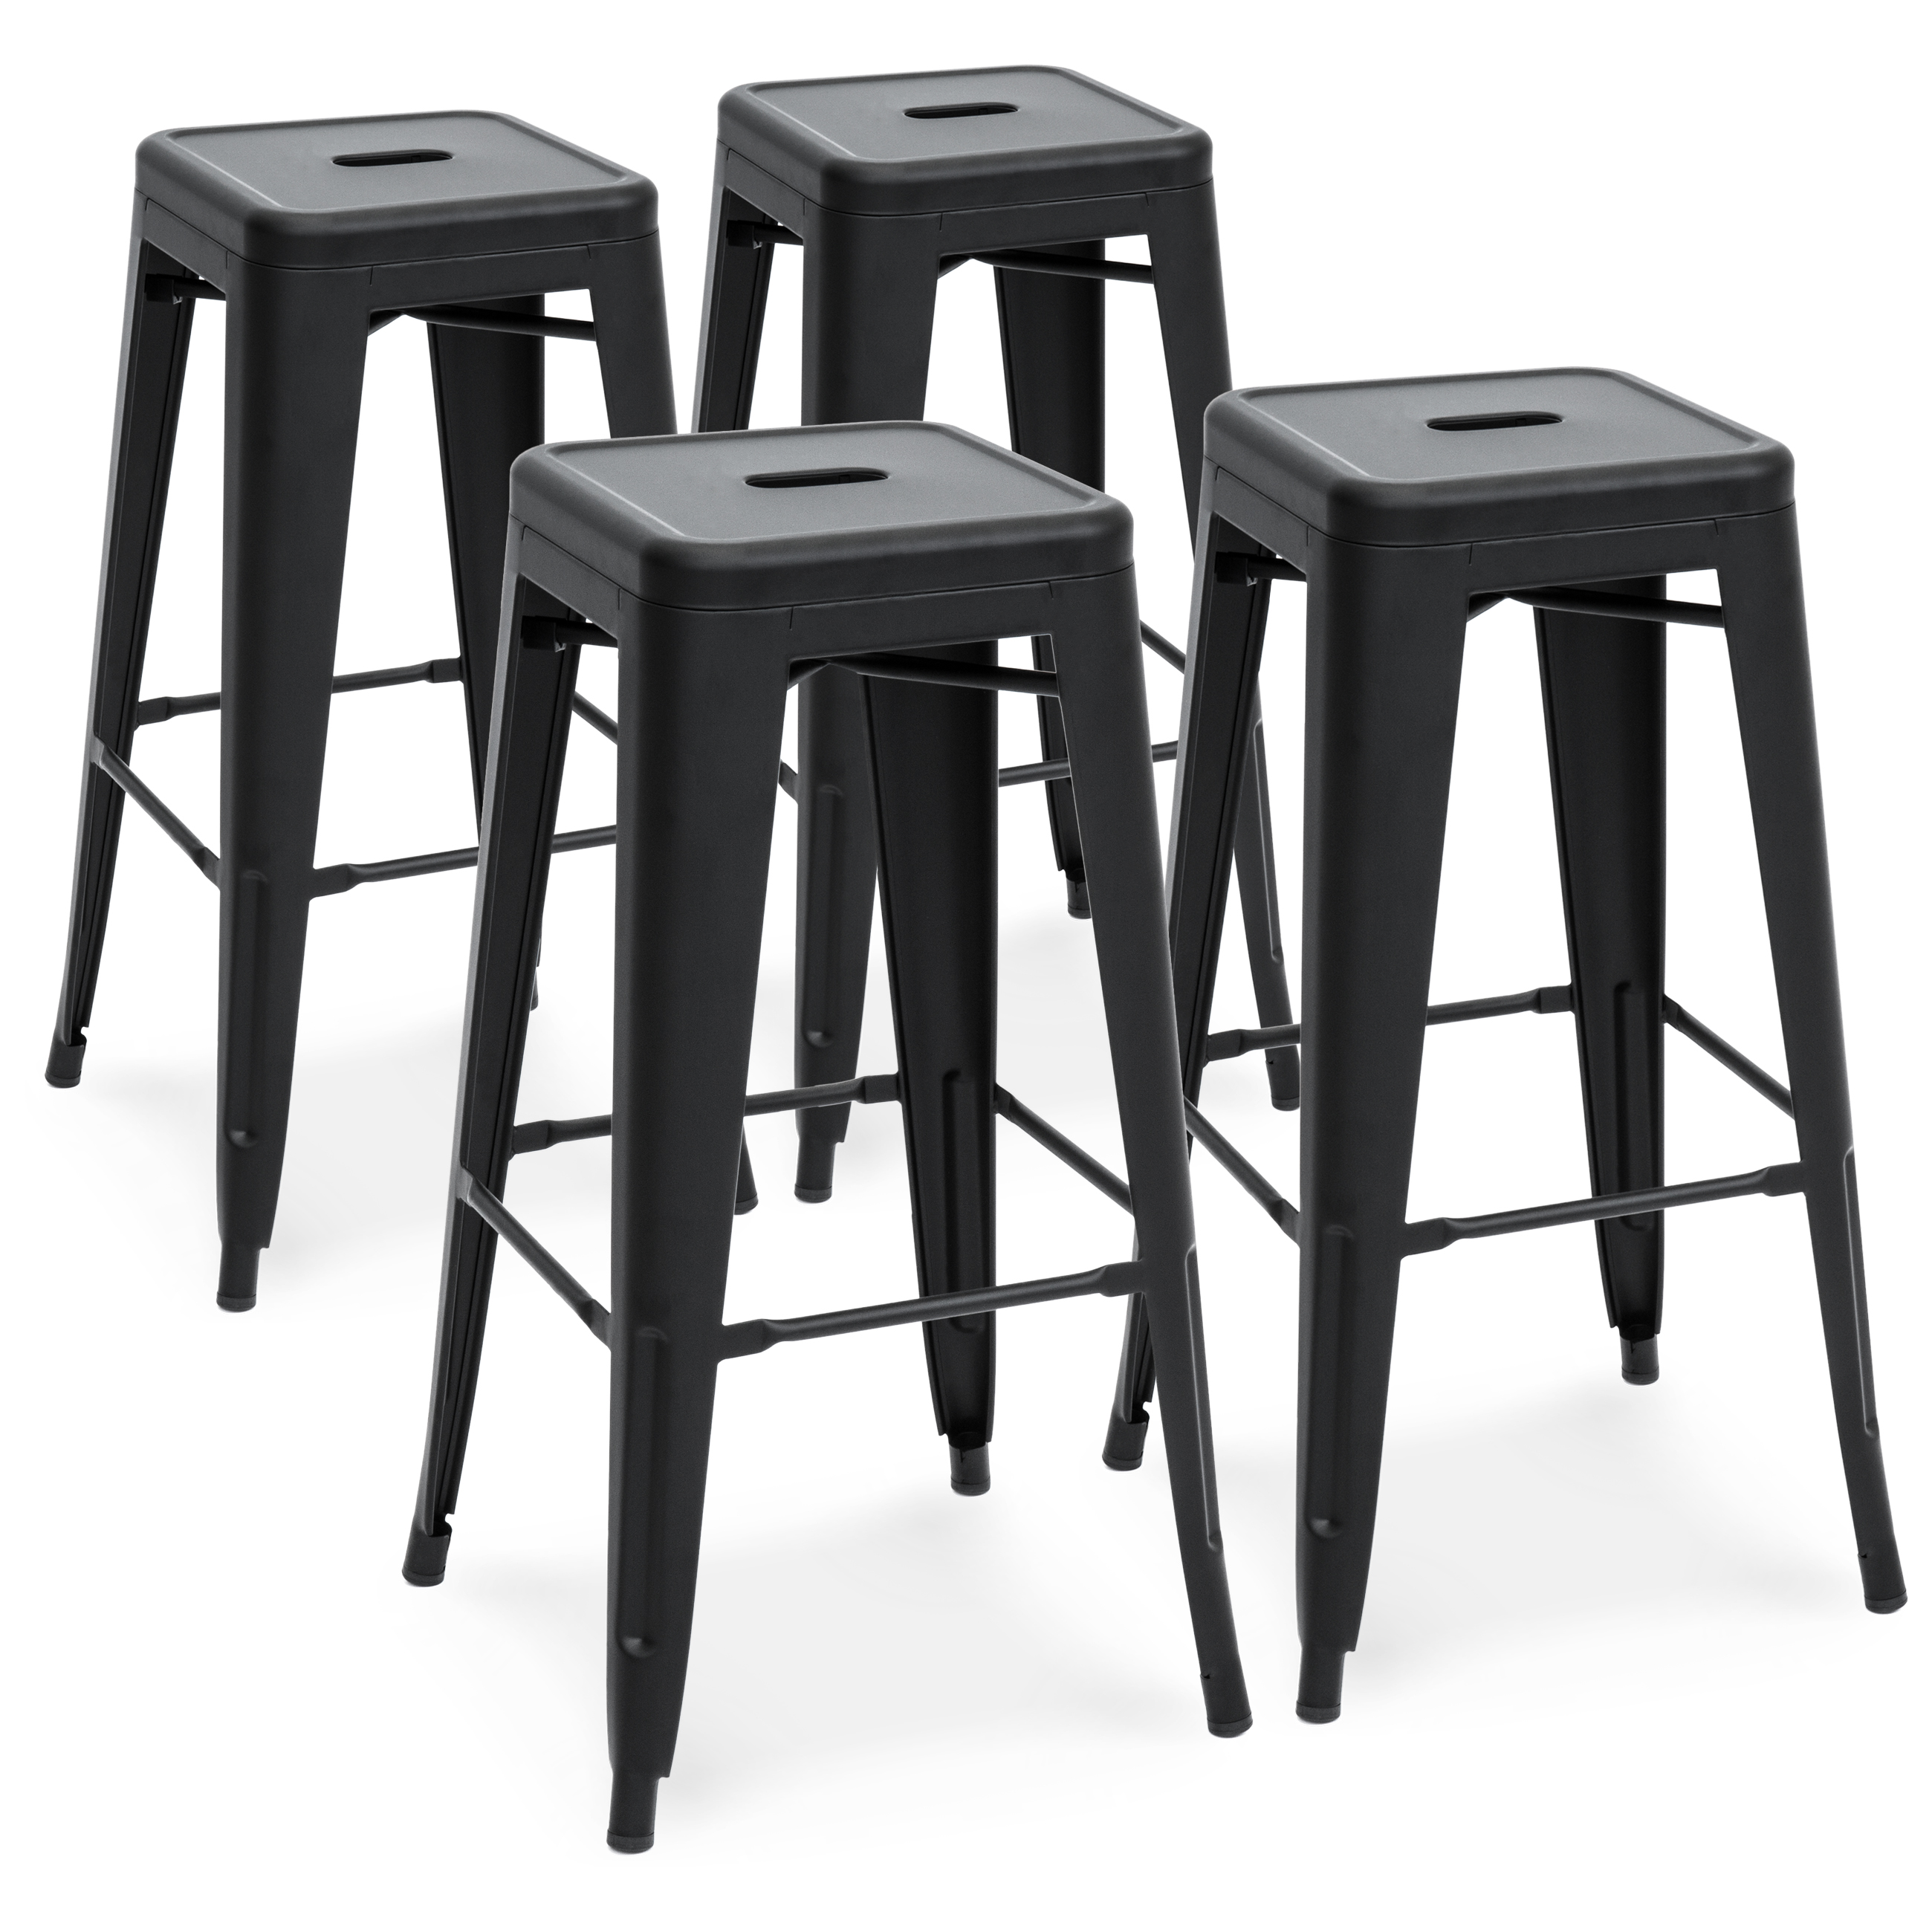 Best Choice Products 30in Set of 2 Modern Industrial Backless Metal Bar Stools - Matte Black